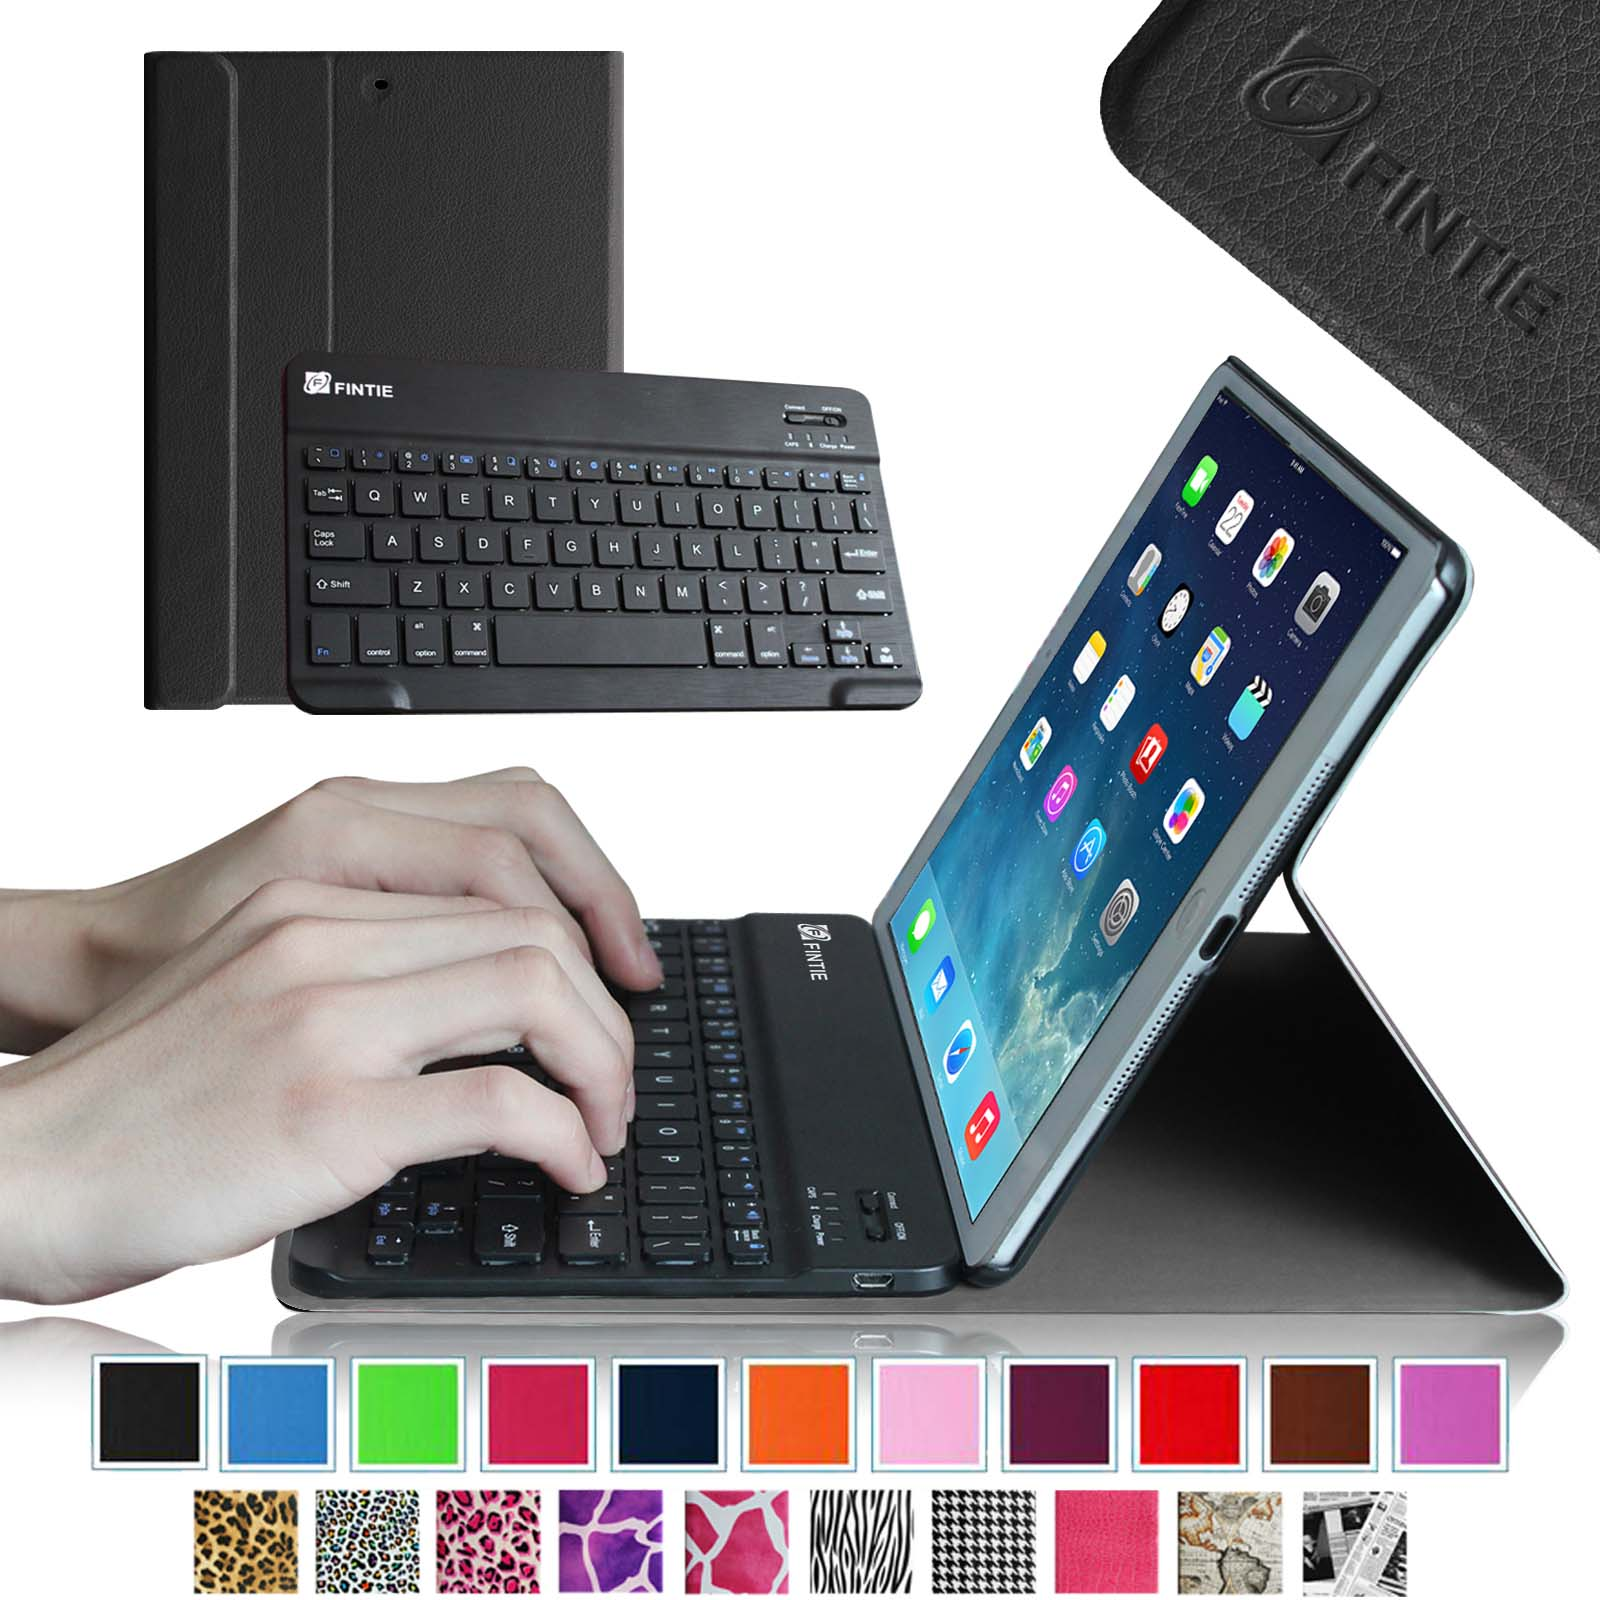 iPad mini 3 / iPad mini 2 / iPad mini Keyboard Case - Fintie Slim Shell Cover with Removable Bluetooth Keyboard, Black